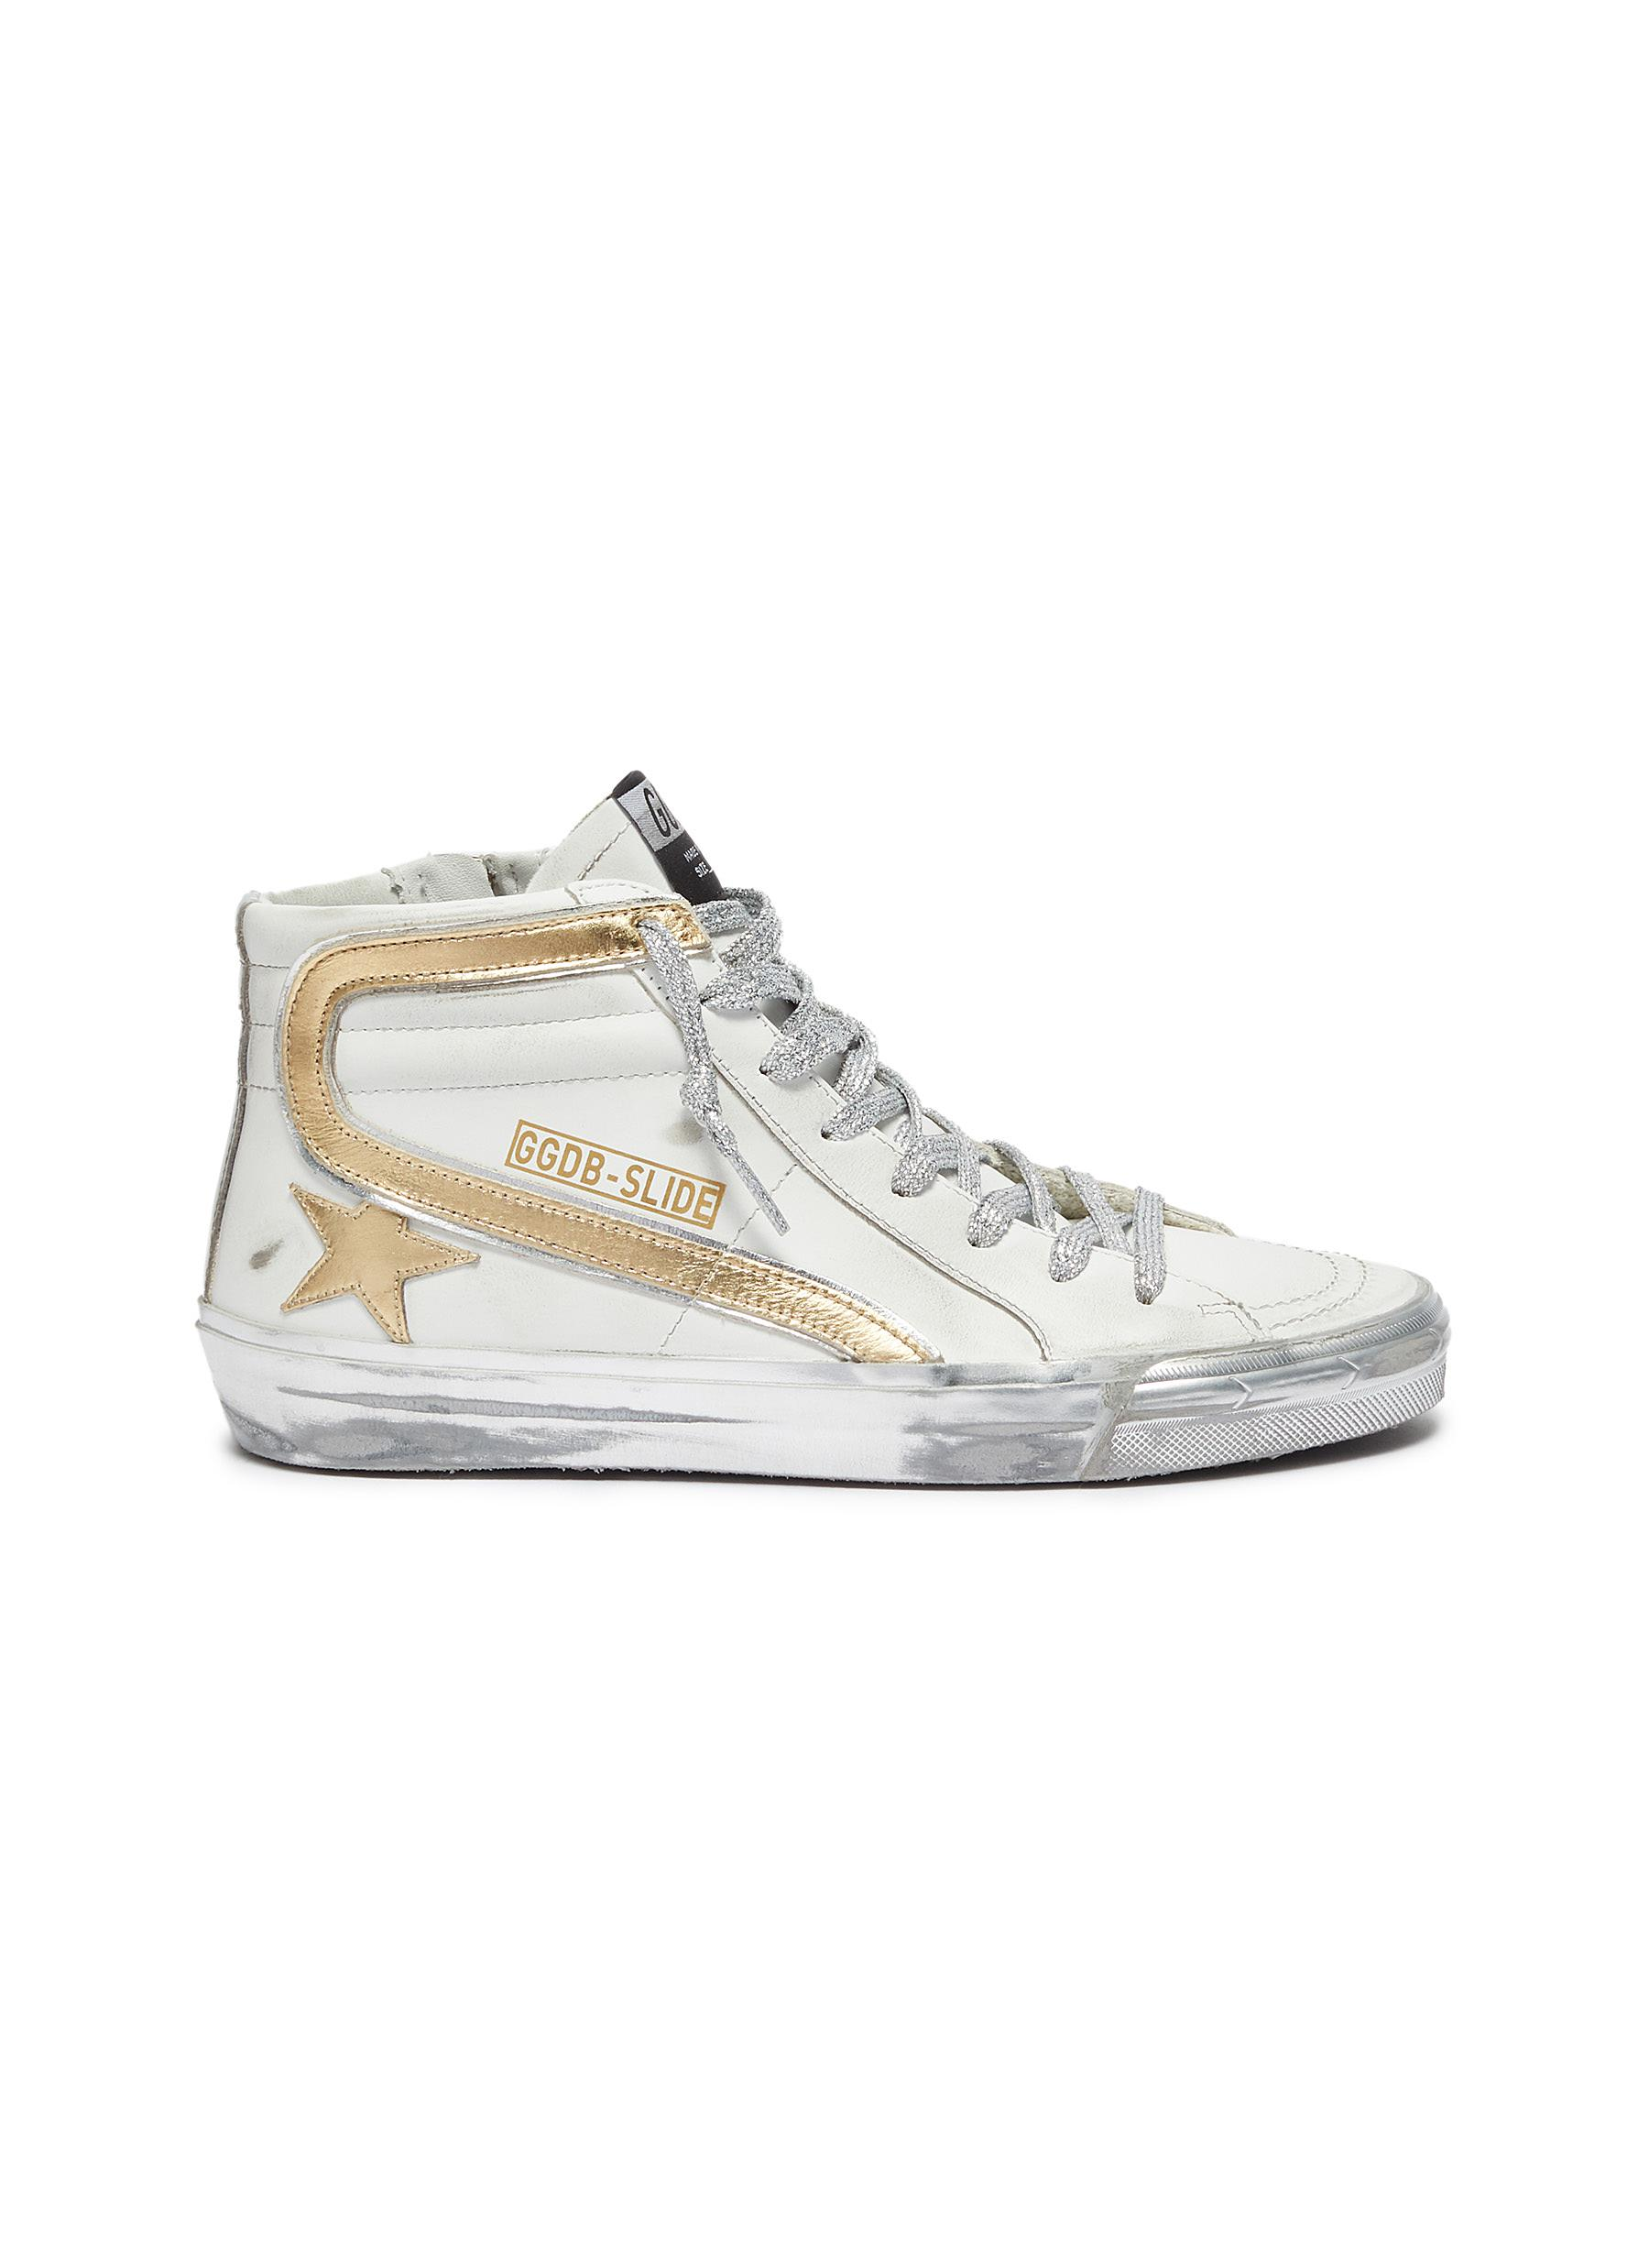 'Slide' Metallic Overlay Distressed High Top Leather Sneakers